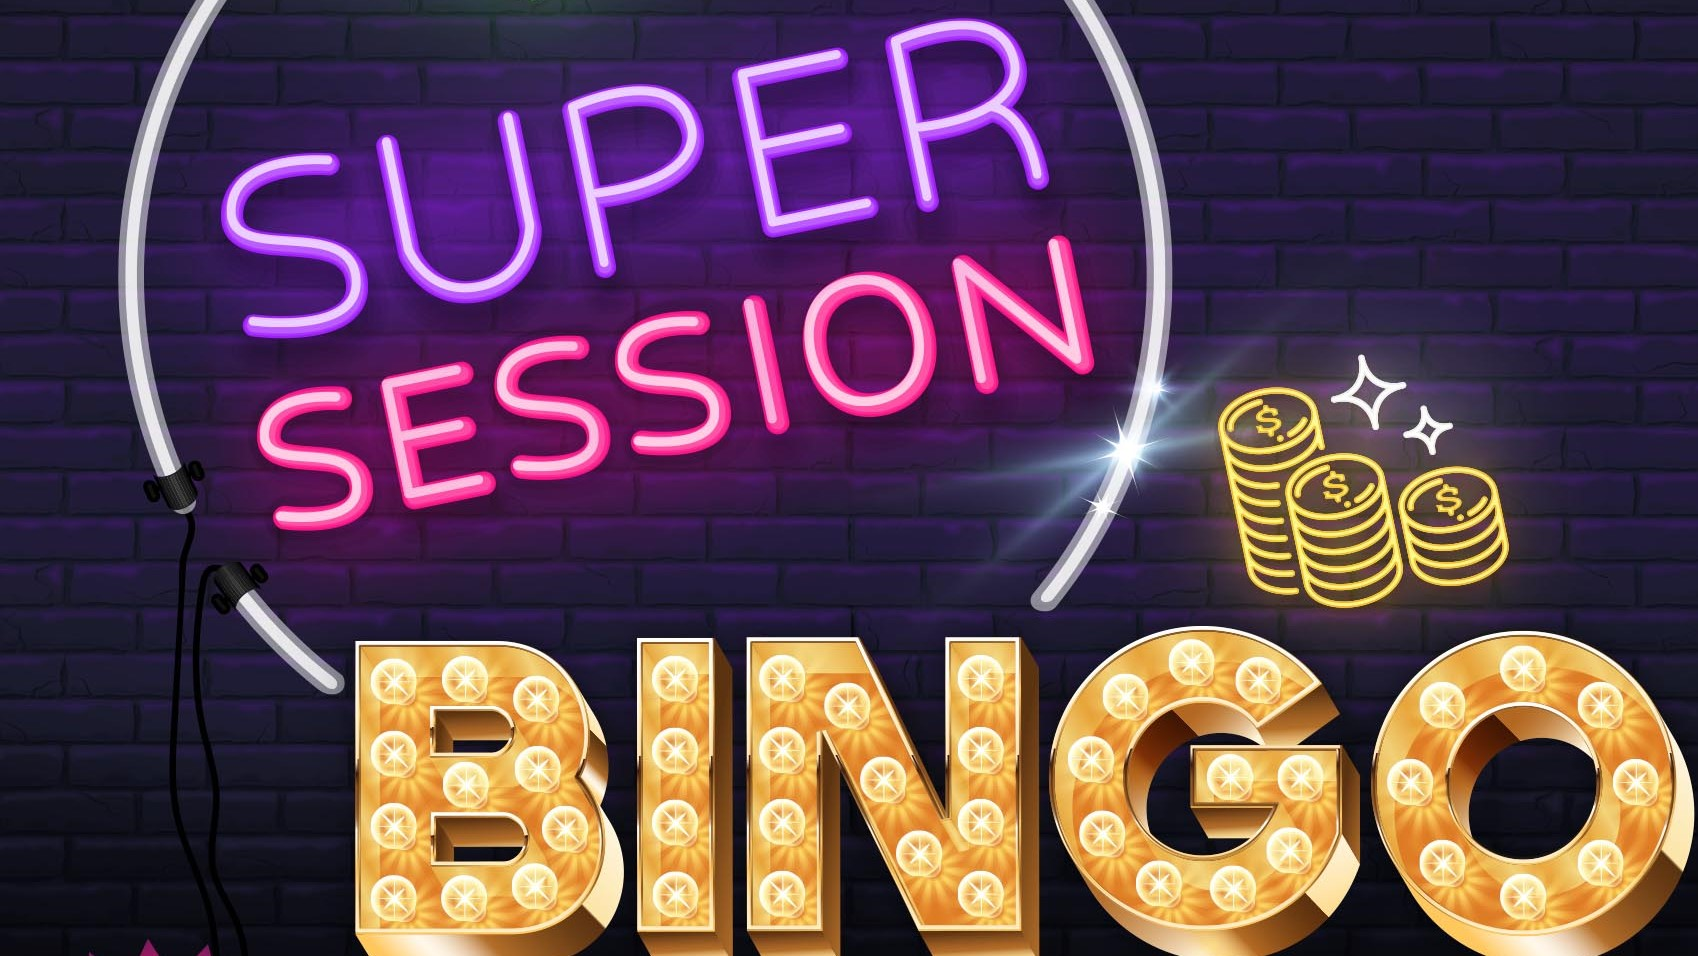 Super Session Bingo